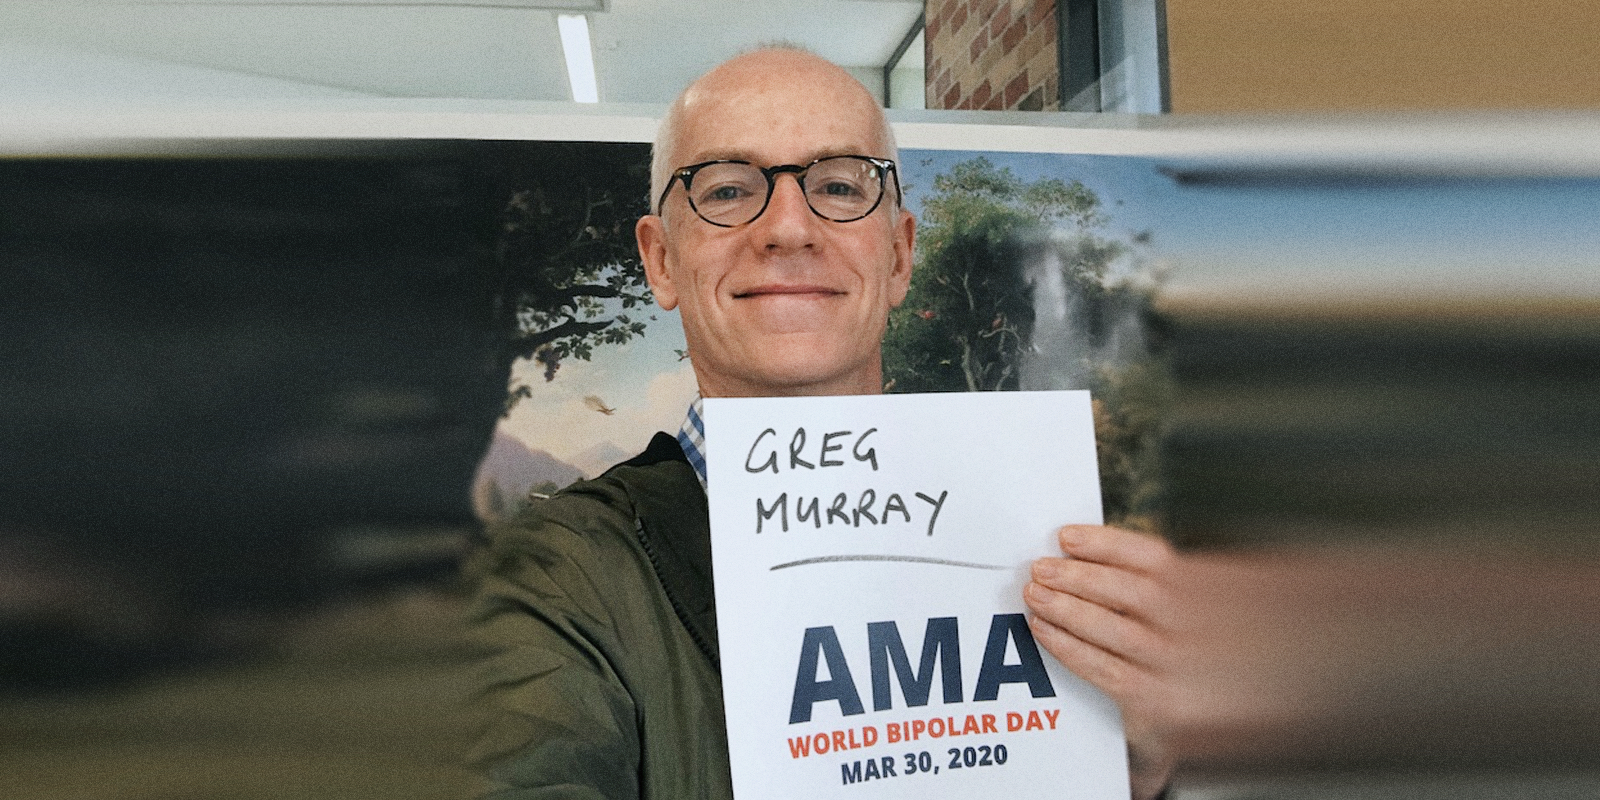 Greg sitting in an office, holding a sign proving he will be involved in the bipolar ama.